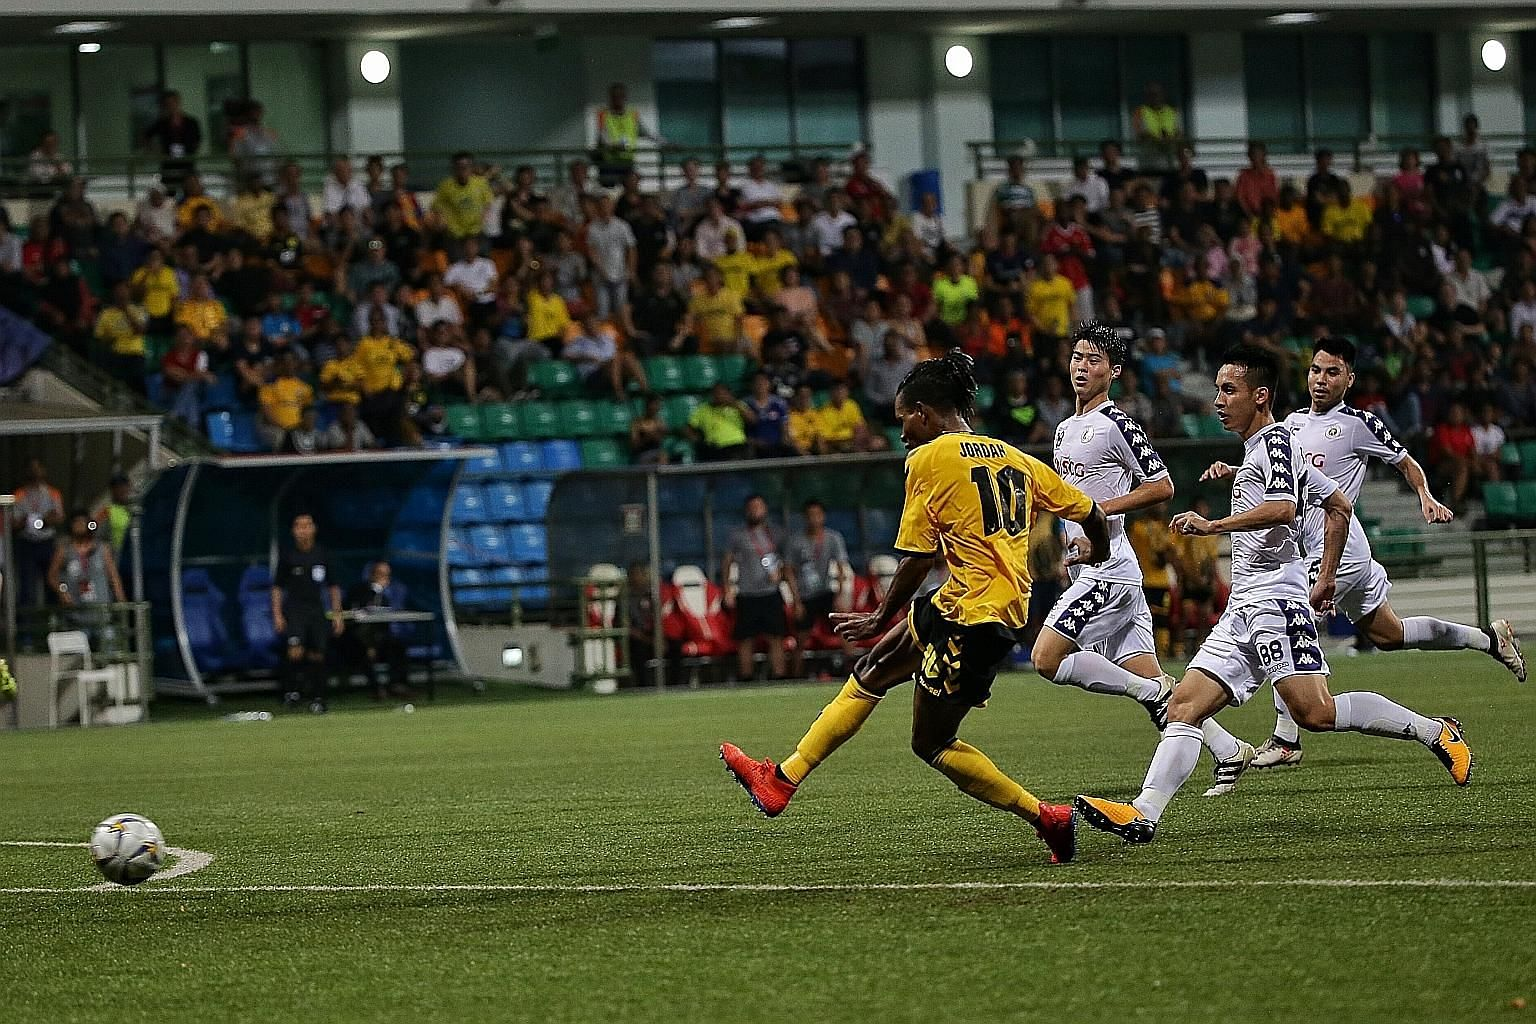 Tampines Rovers winger Jordan Webb scoring the equaliser during the 1-1 AFC Cup draw against Hanoi FC at Jalan Besar Stadium yesterday. The result meant that Hanoi stay top, ahead of the Stags on goal difference.